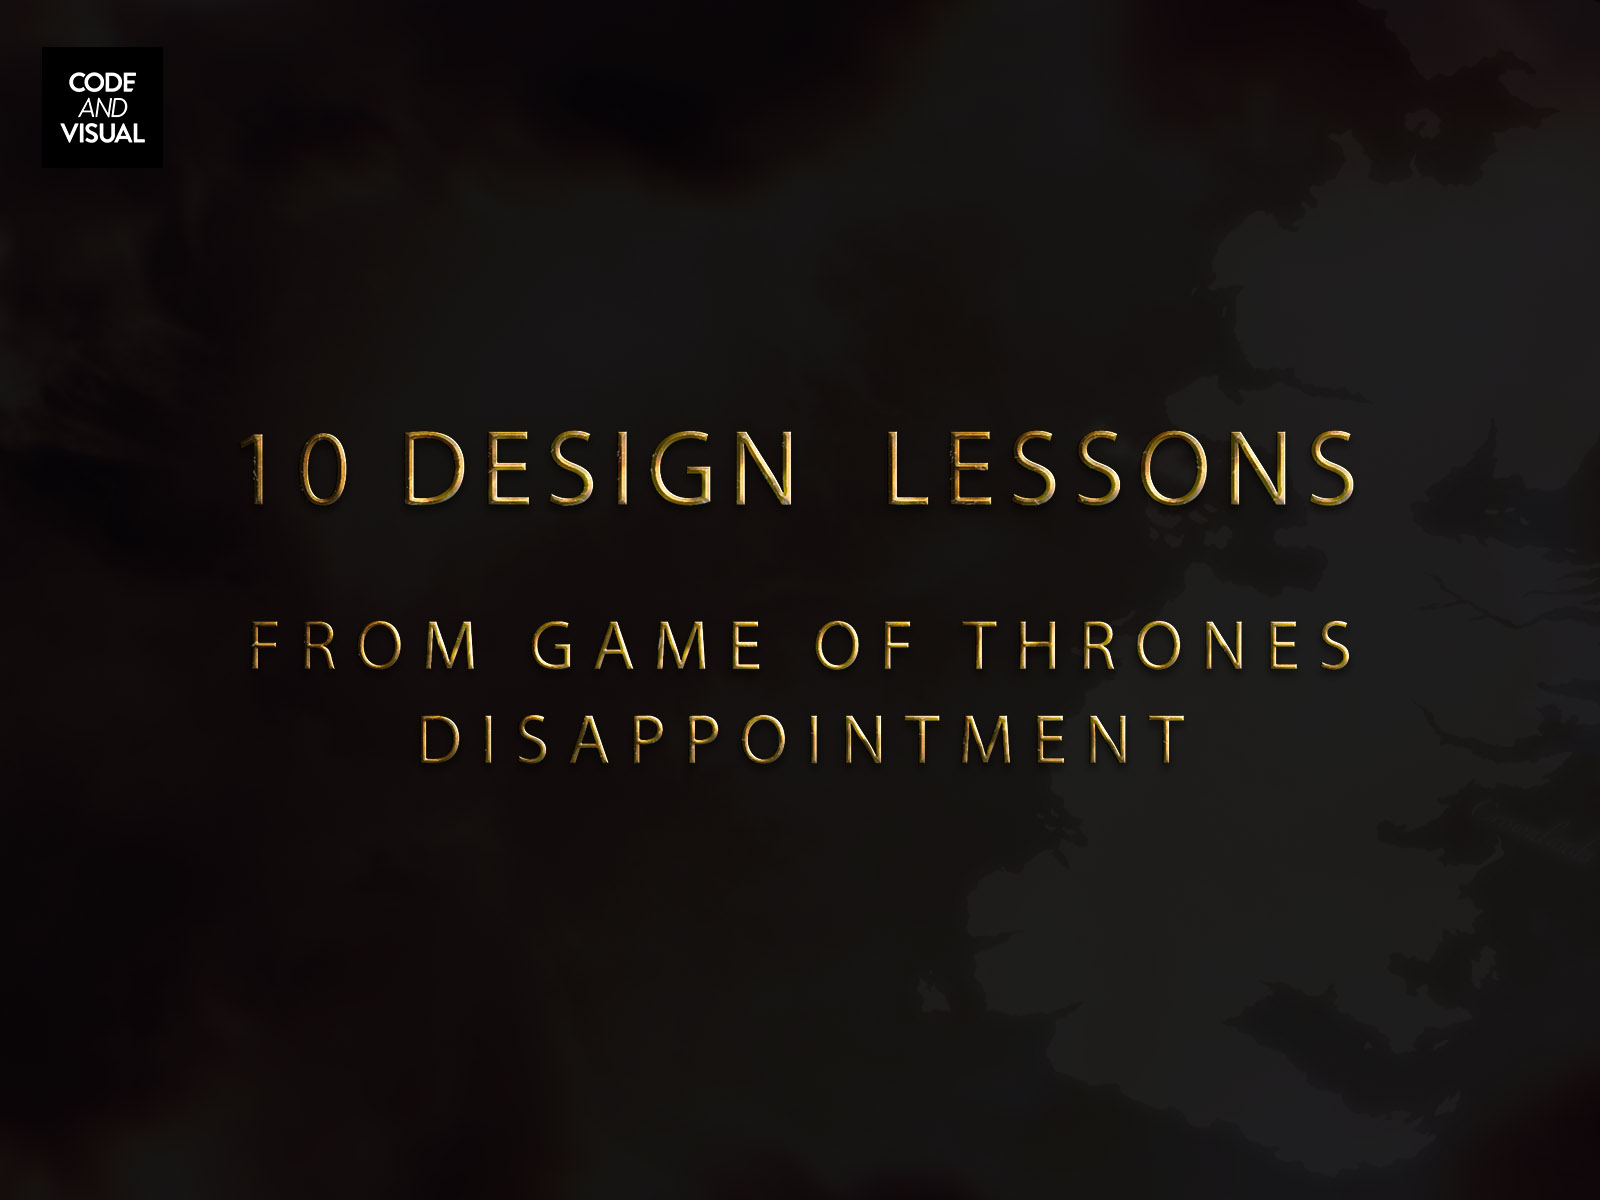 10-design-lessons-game-of-thrones